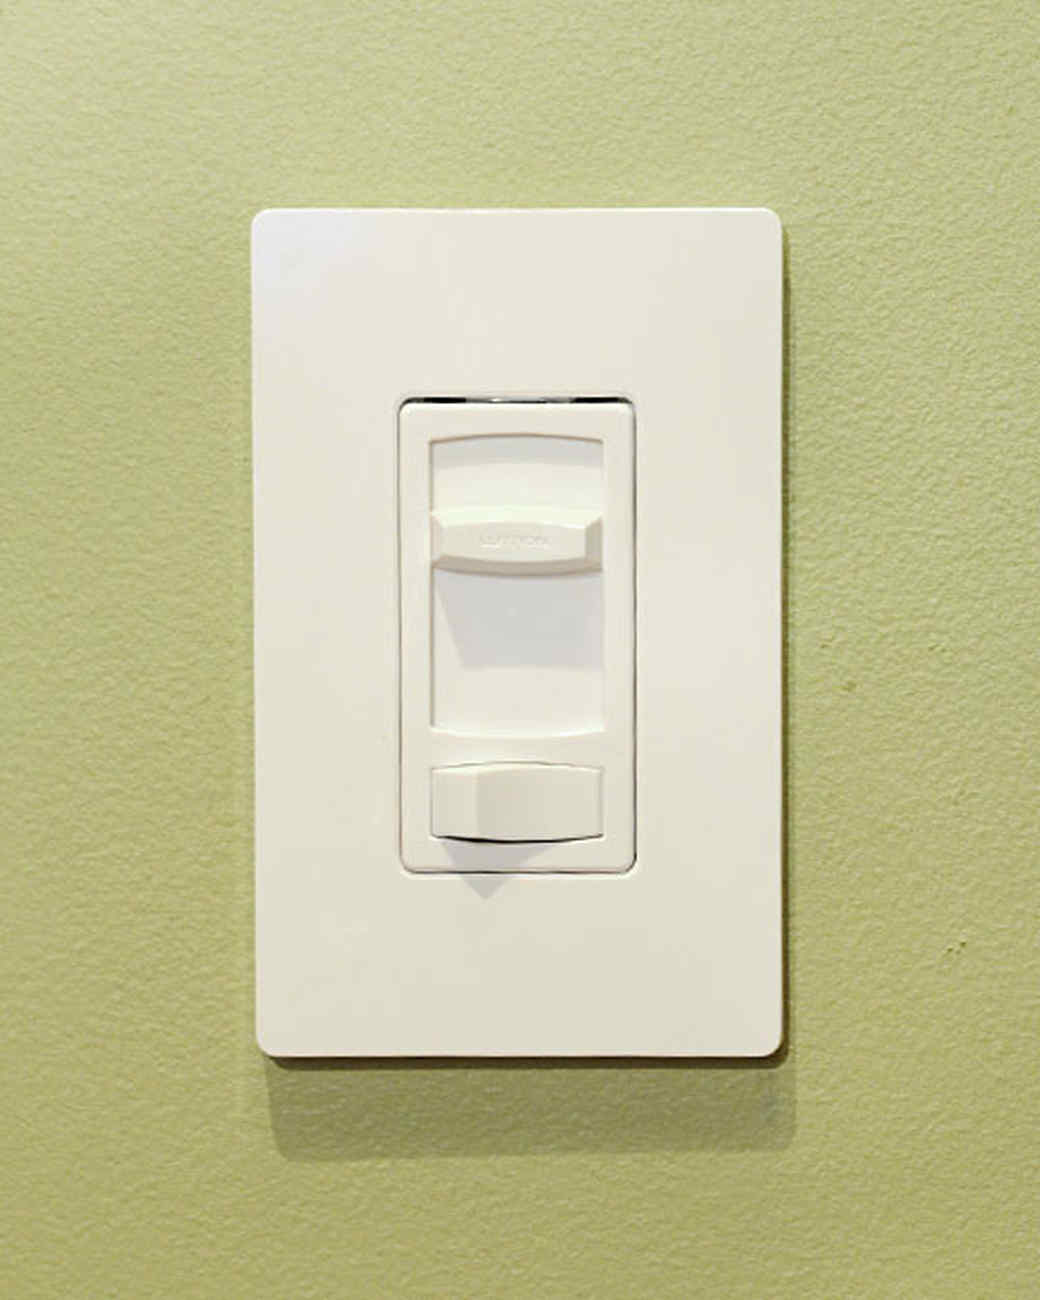 hight resolution of installing a dimmer